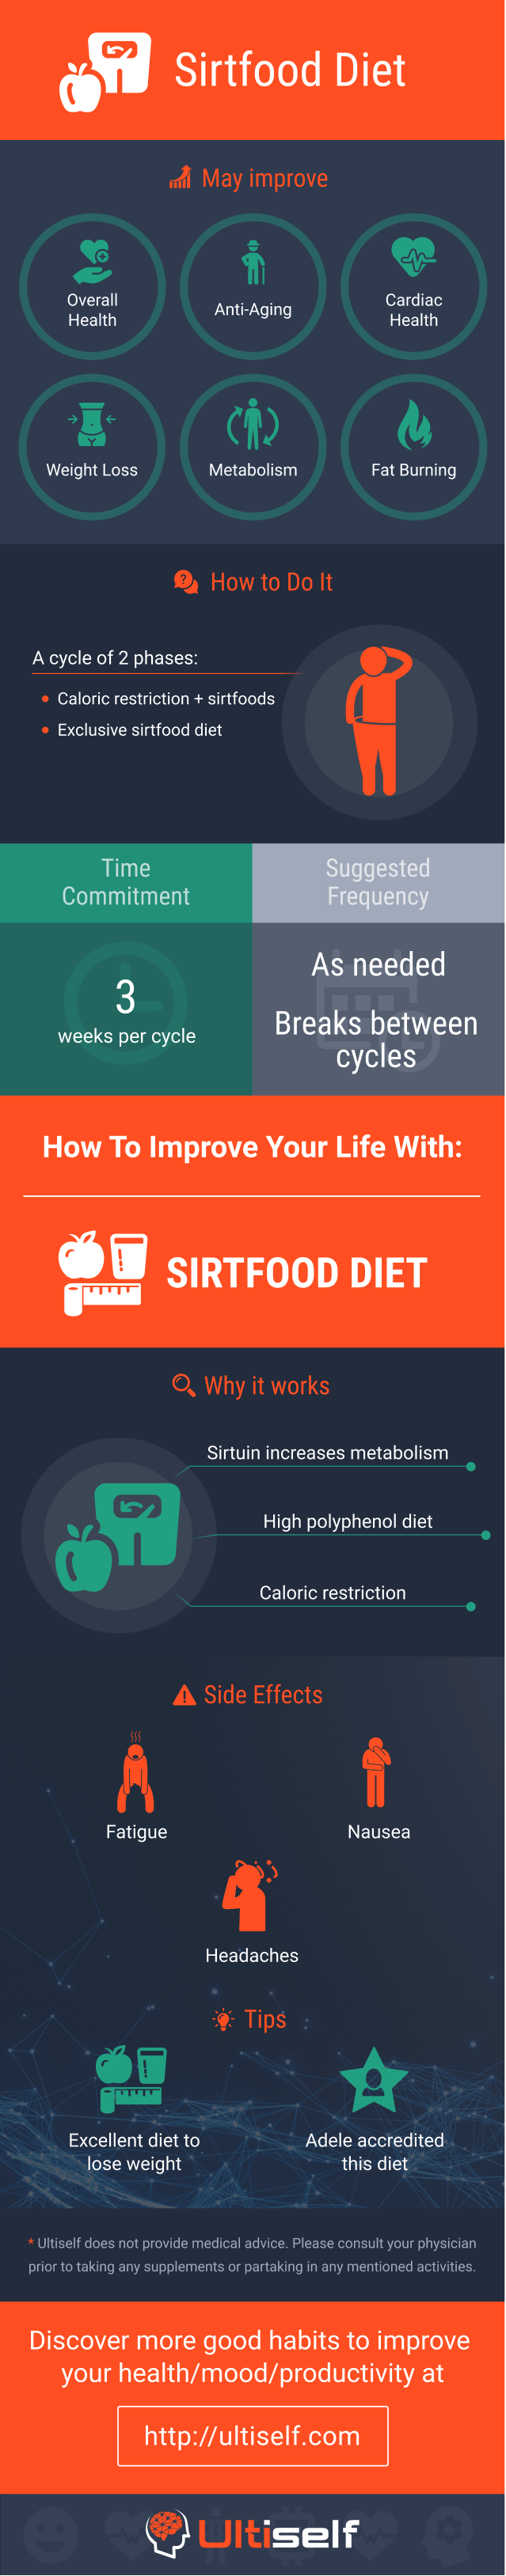 Sirtfood Diet infographic